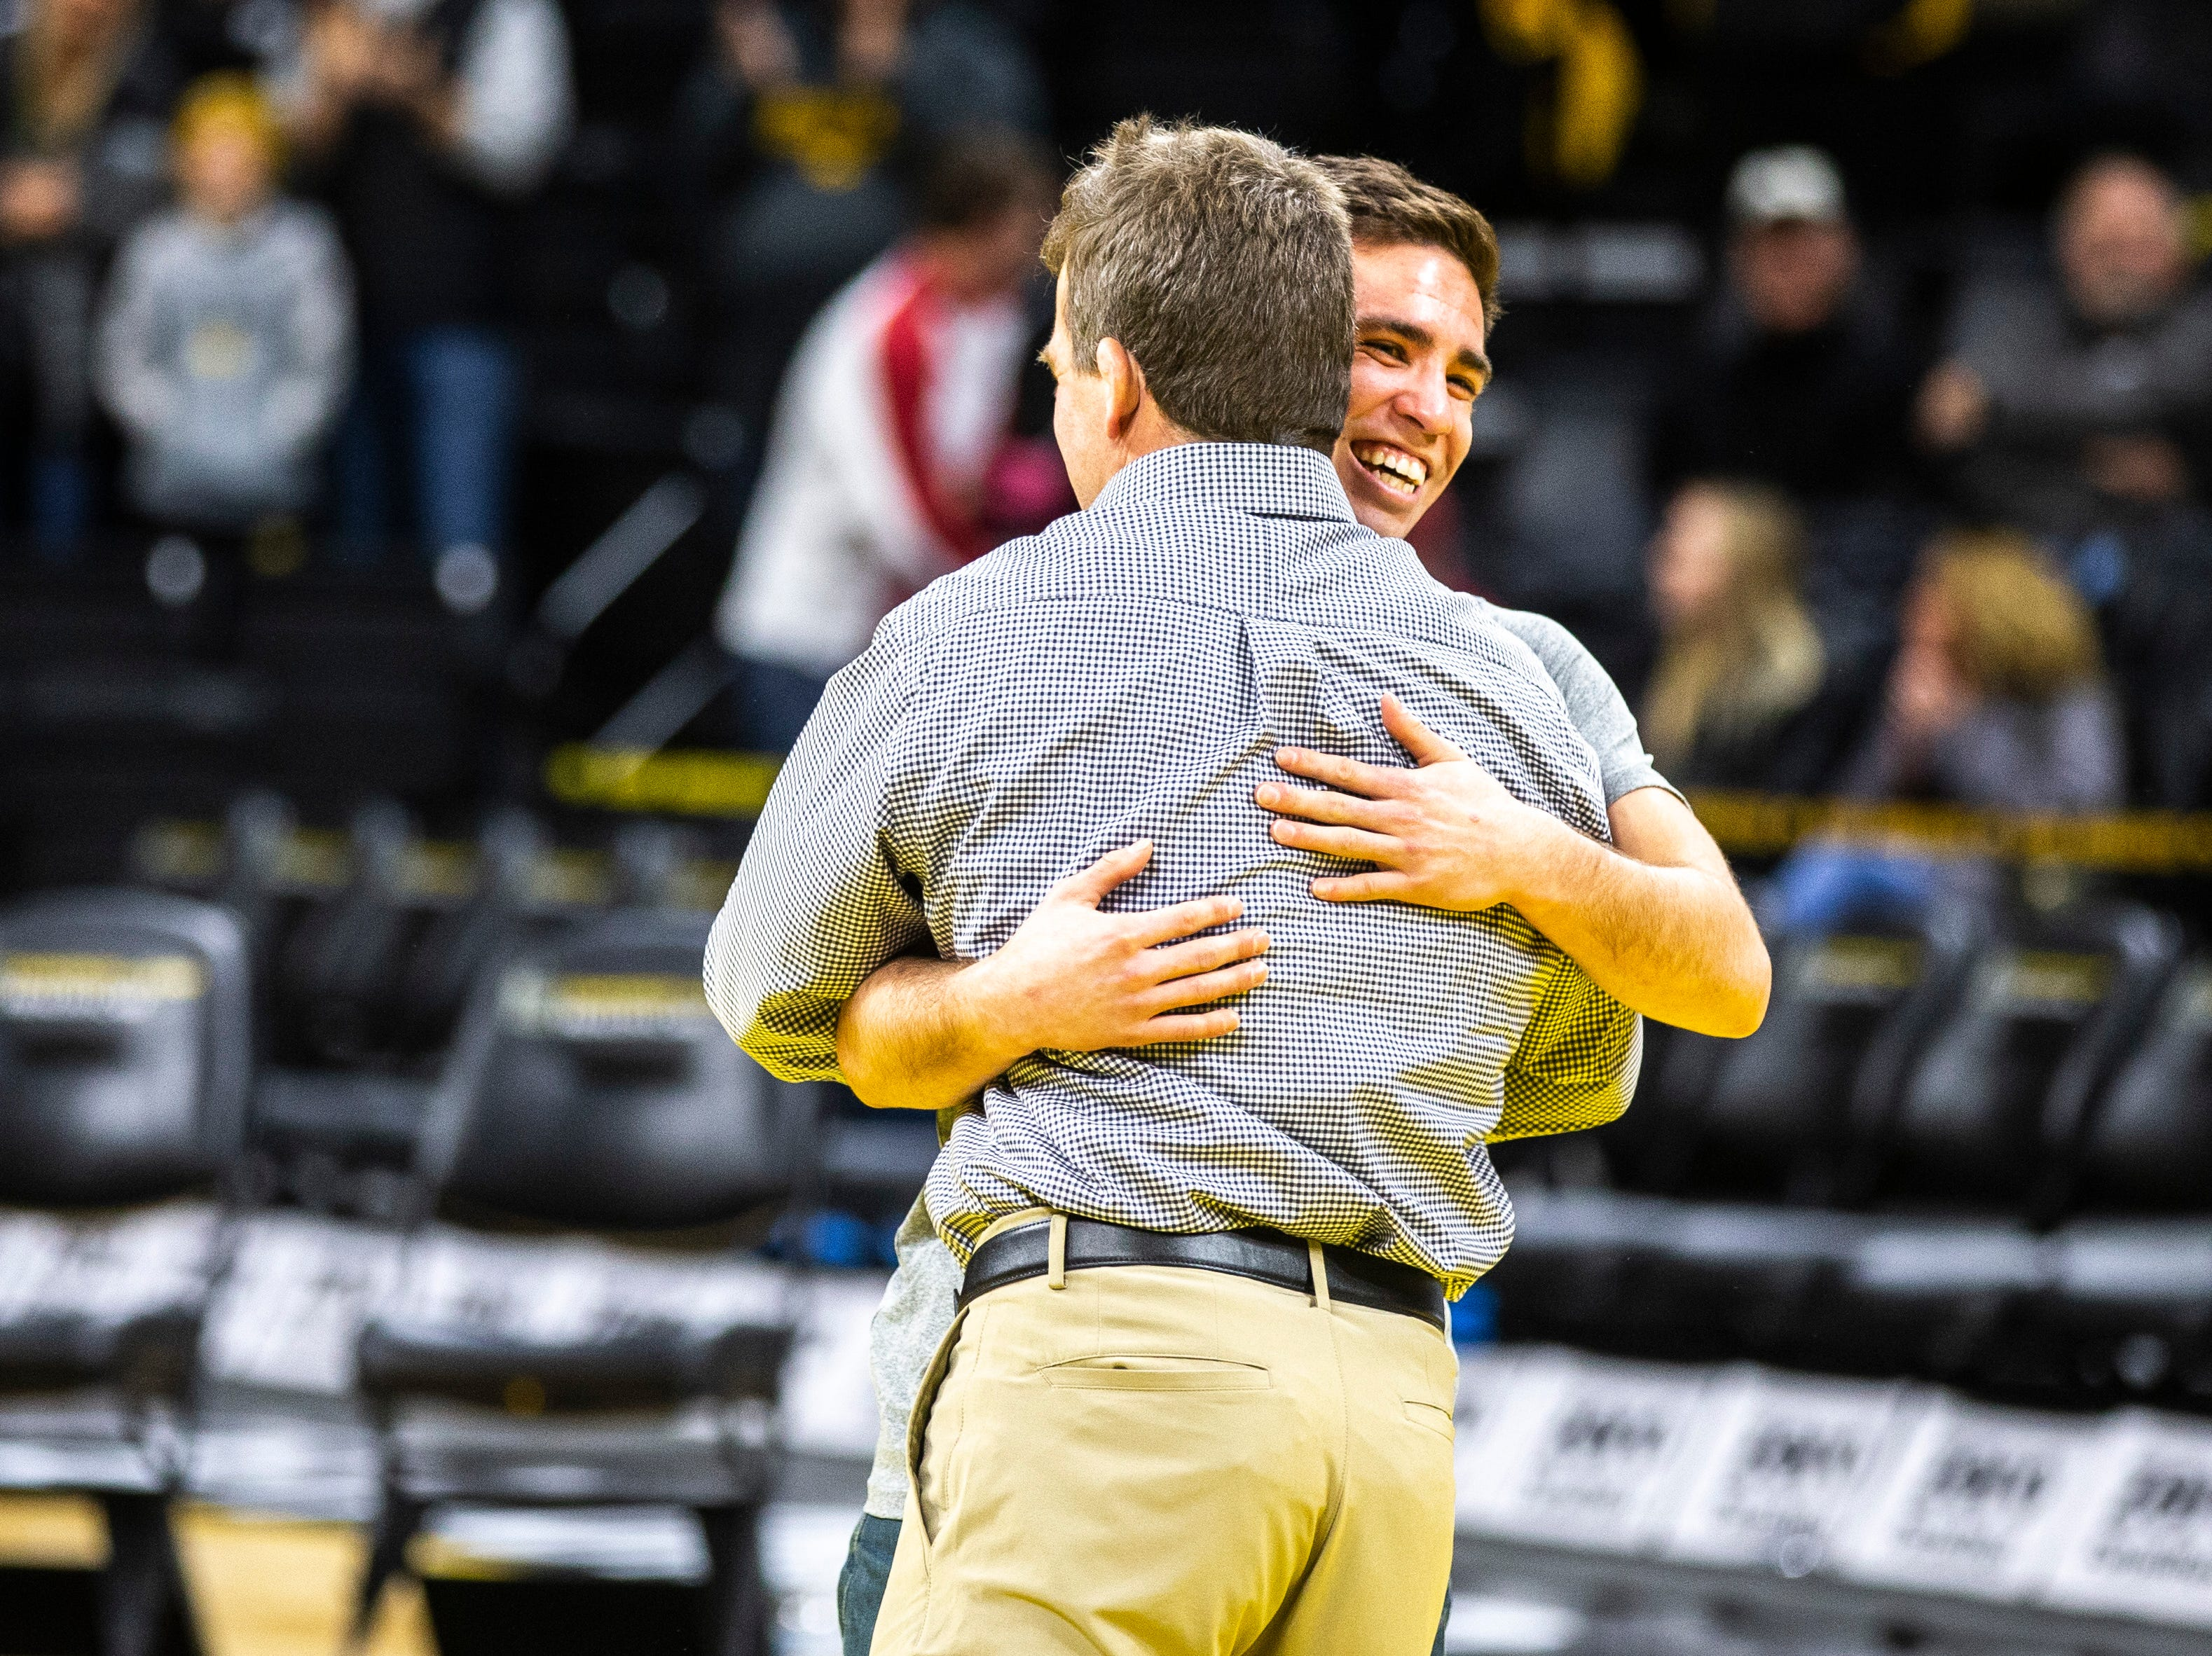 Iowa associate head coach Terry Brands hugs senior 125-pounder Perez Perez after a NCAA Big Ten Conference wrestling dual on Friday, Feb. 15, 2019 at Carver-Hawkeye Arena in Iowa City, Iowa.